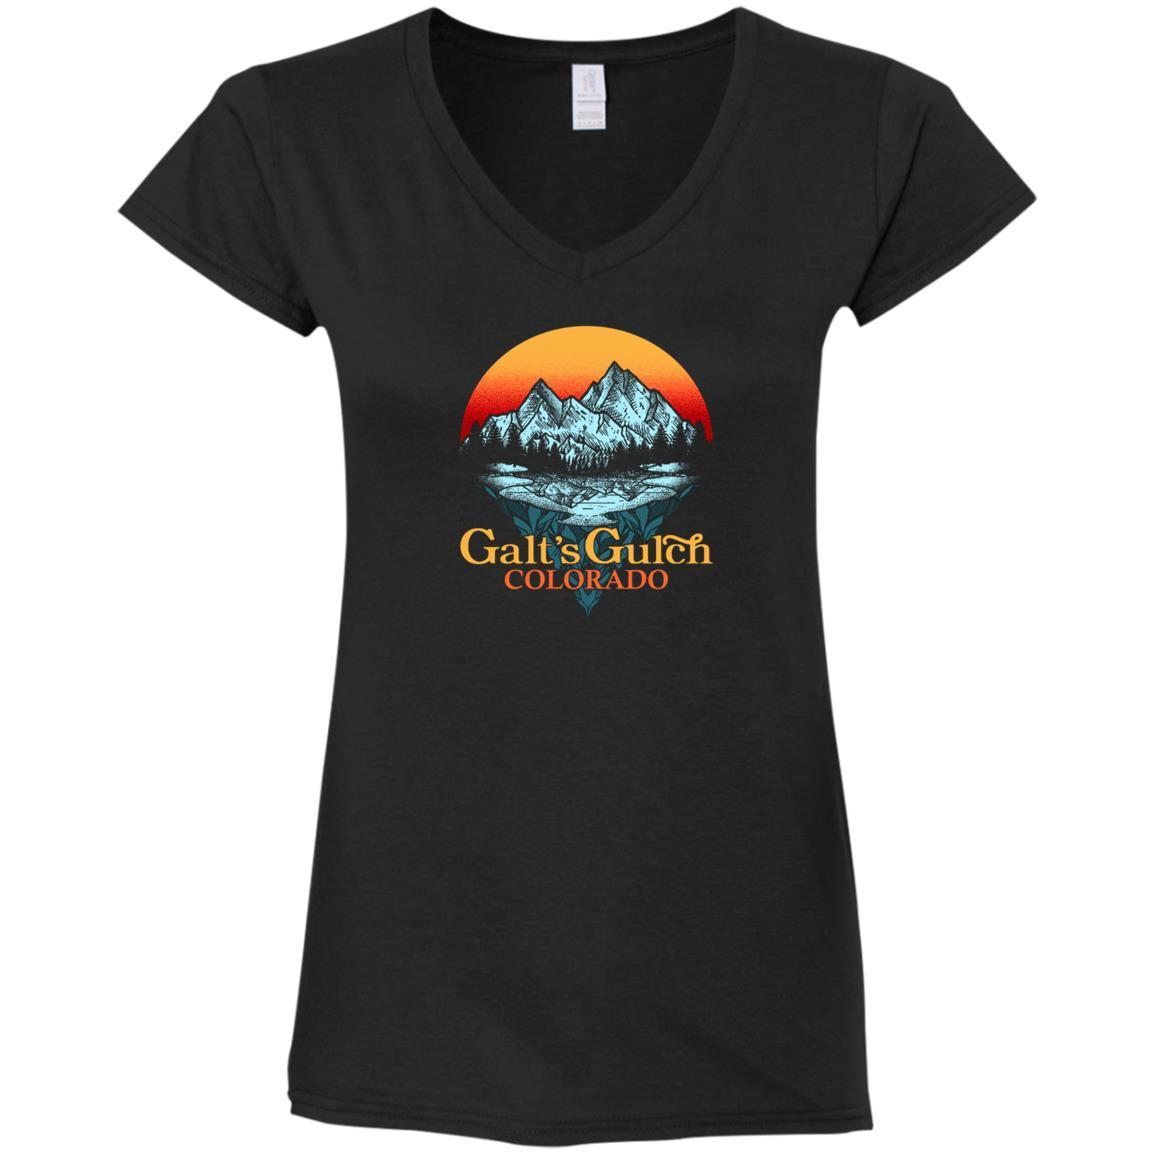 Galt's Gulch Ladies V-Neck